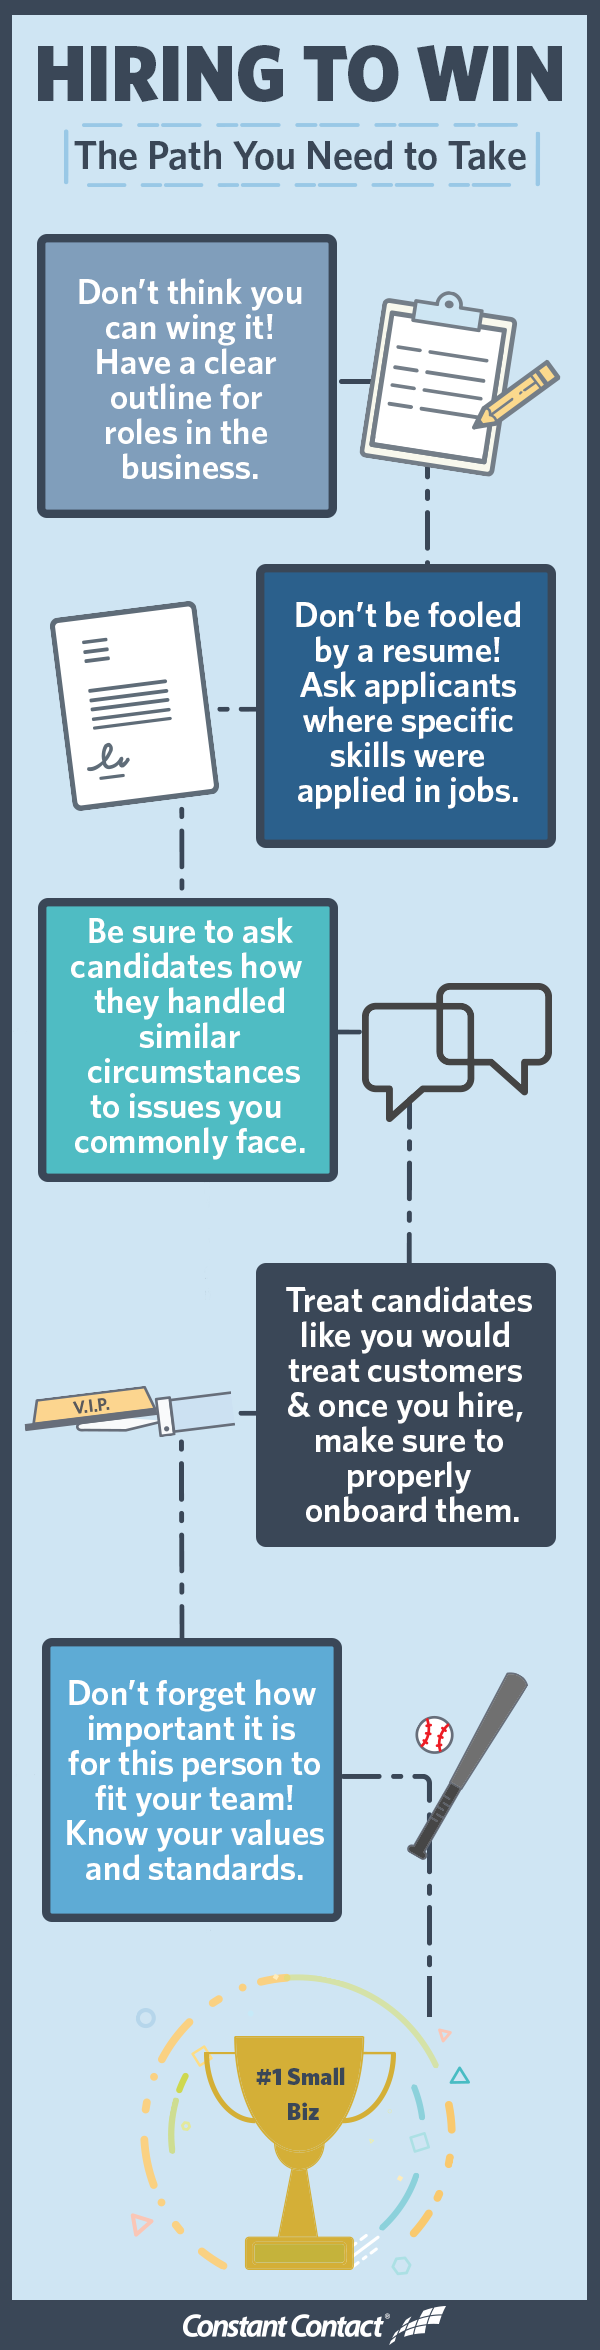 hiring to win infographic